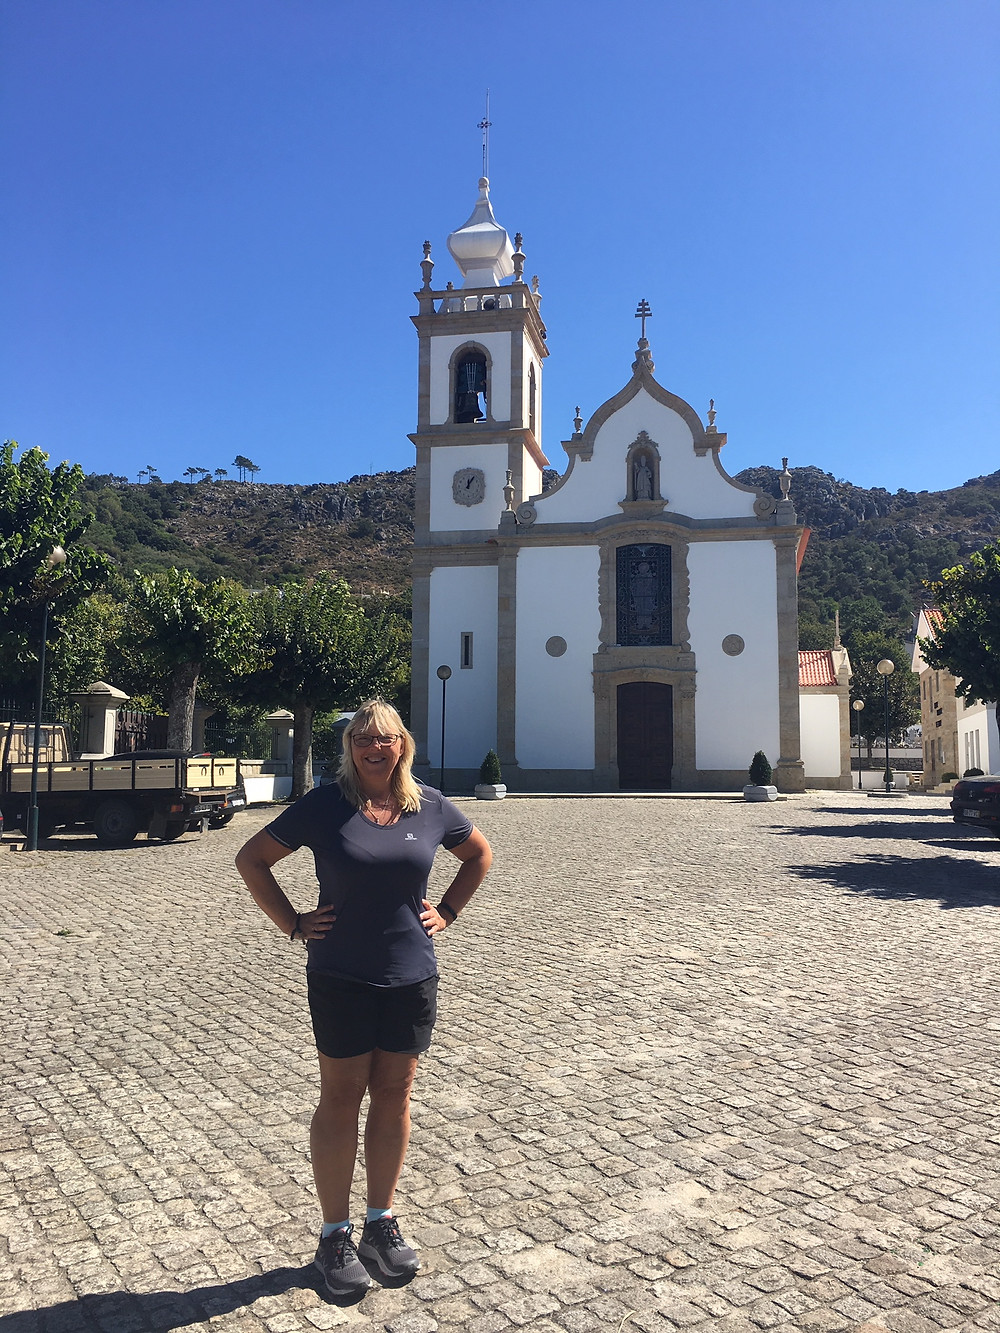 Linda Mott on the El Camino Trail in Portugal after losing 35 pounds to get in shape.  She used a one piece swimsuit from Sun Vixen Swimwear in Vancouver Canada as her weight loss reward incentive.